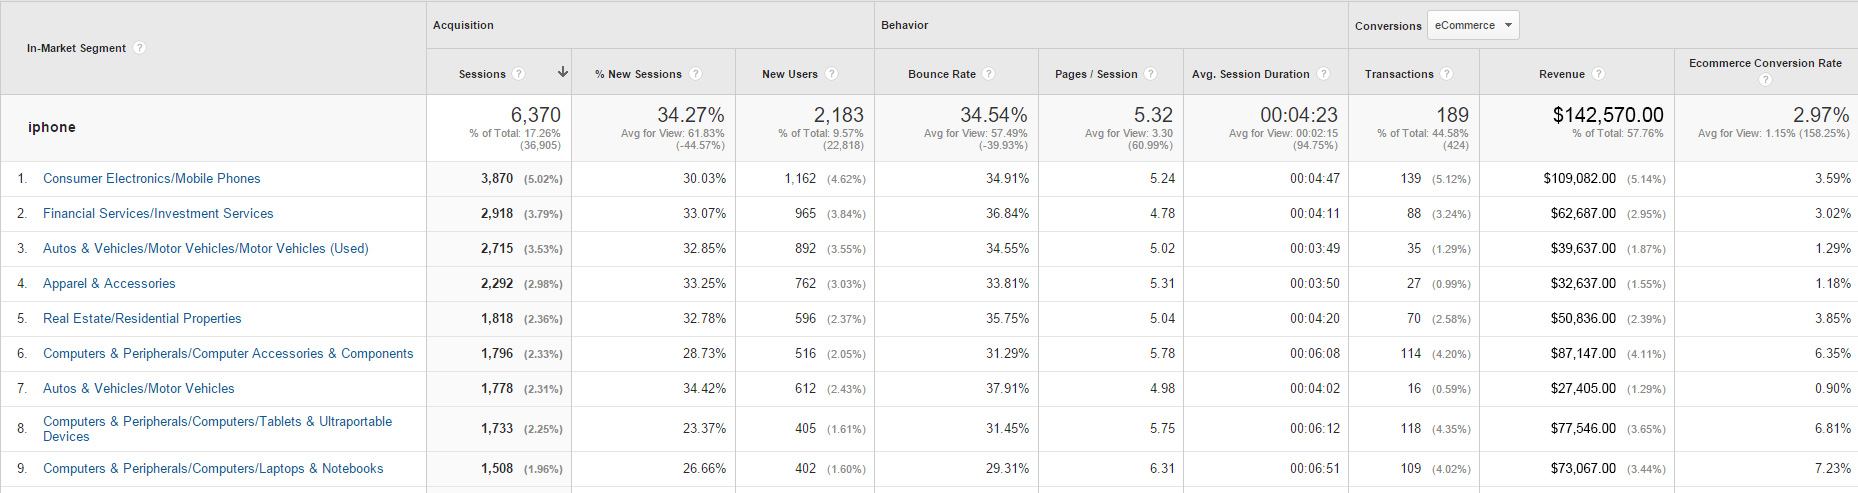 Interested customers audiences (ROI) in AdWords